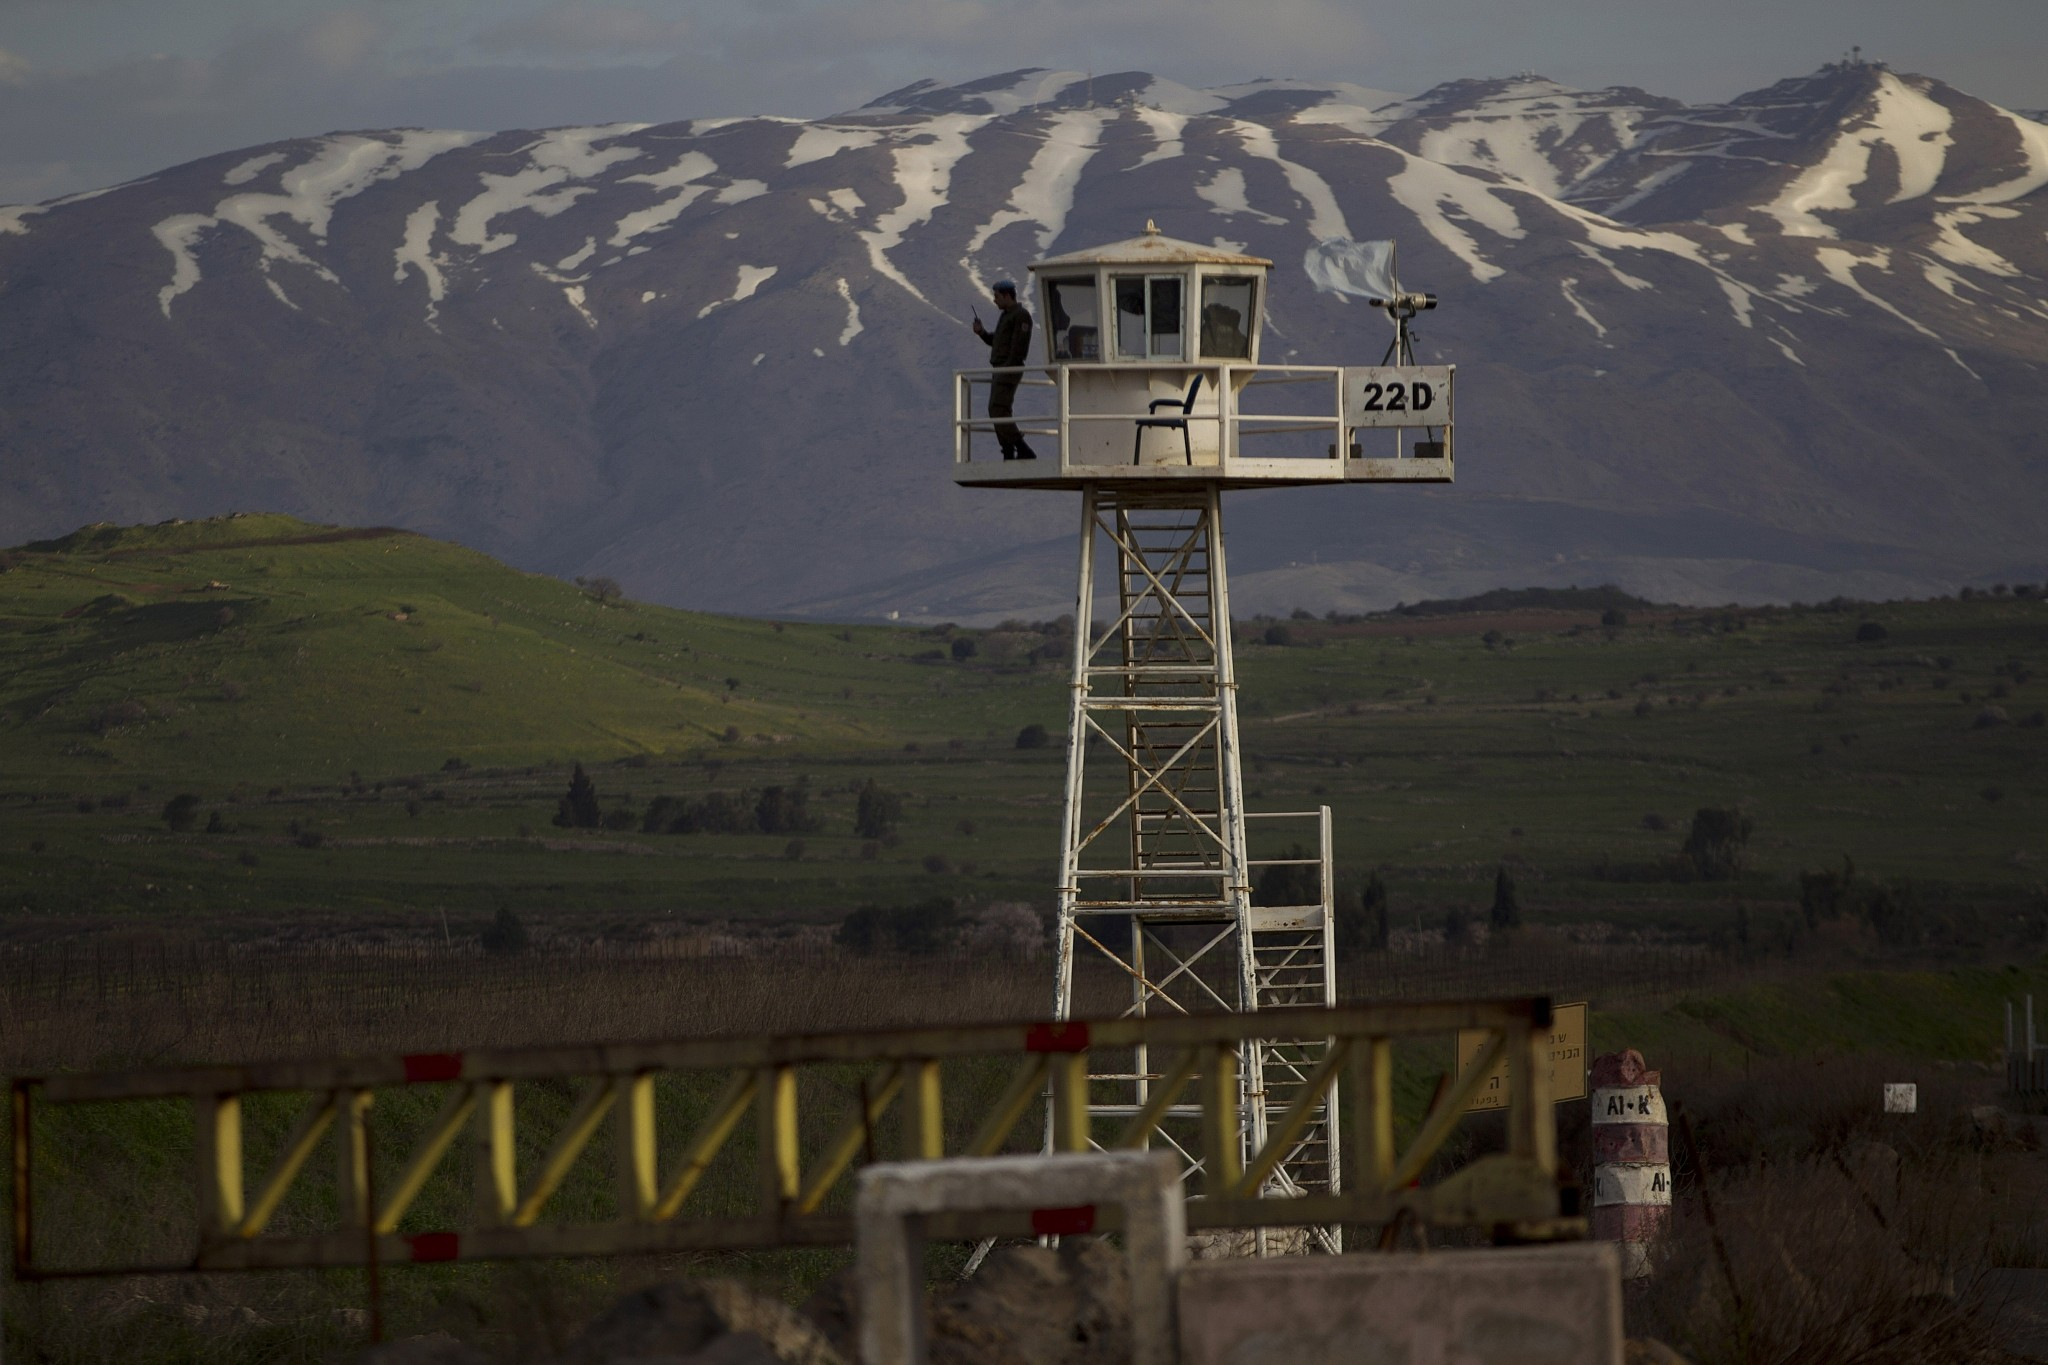 Donald Trump to recognise Israel sovereignty over Golan Heights